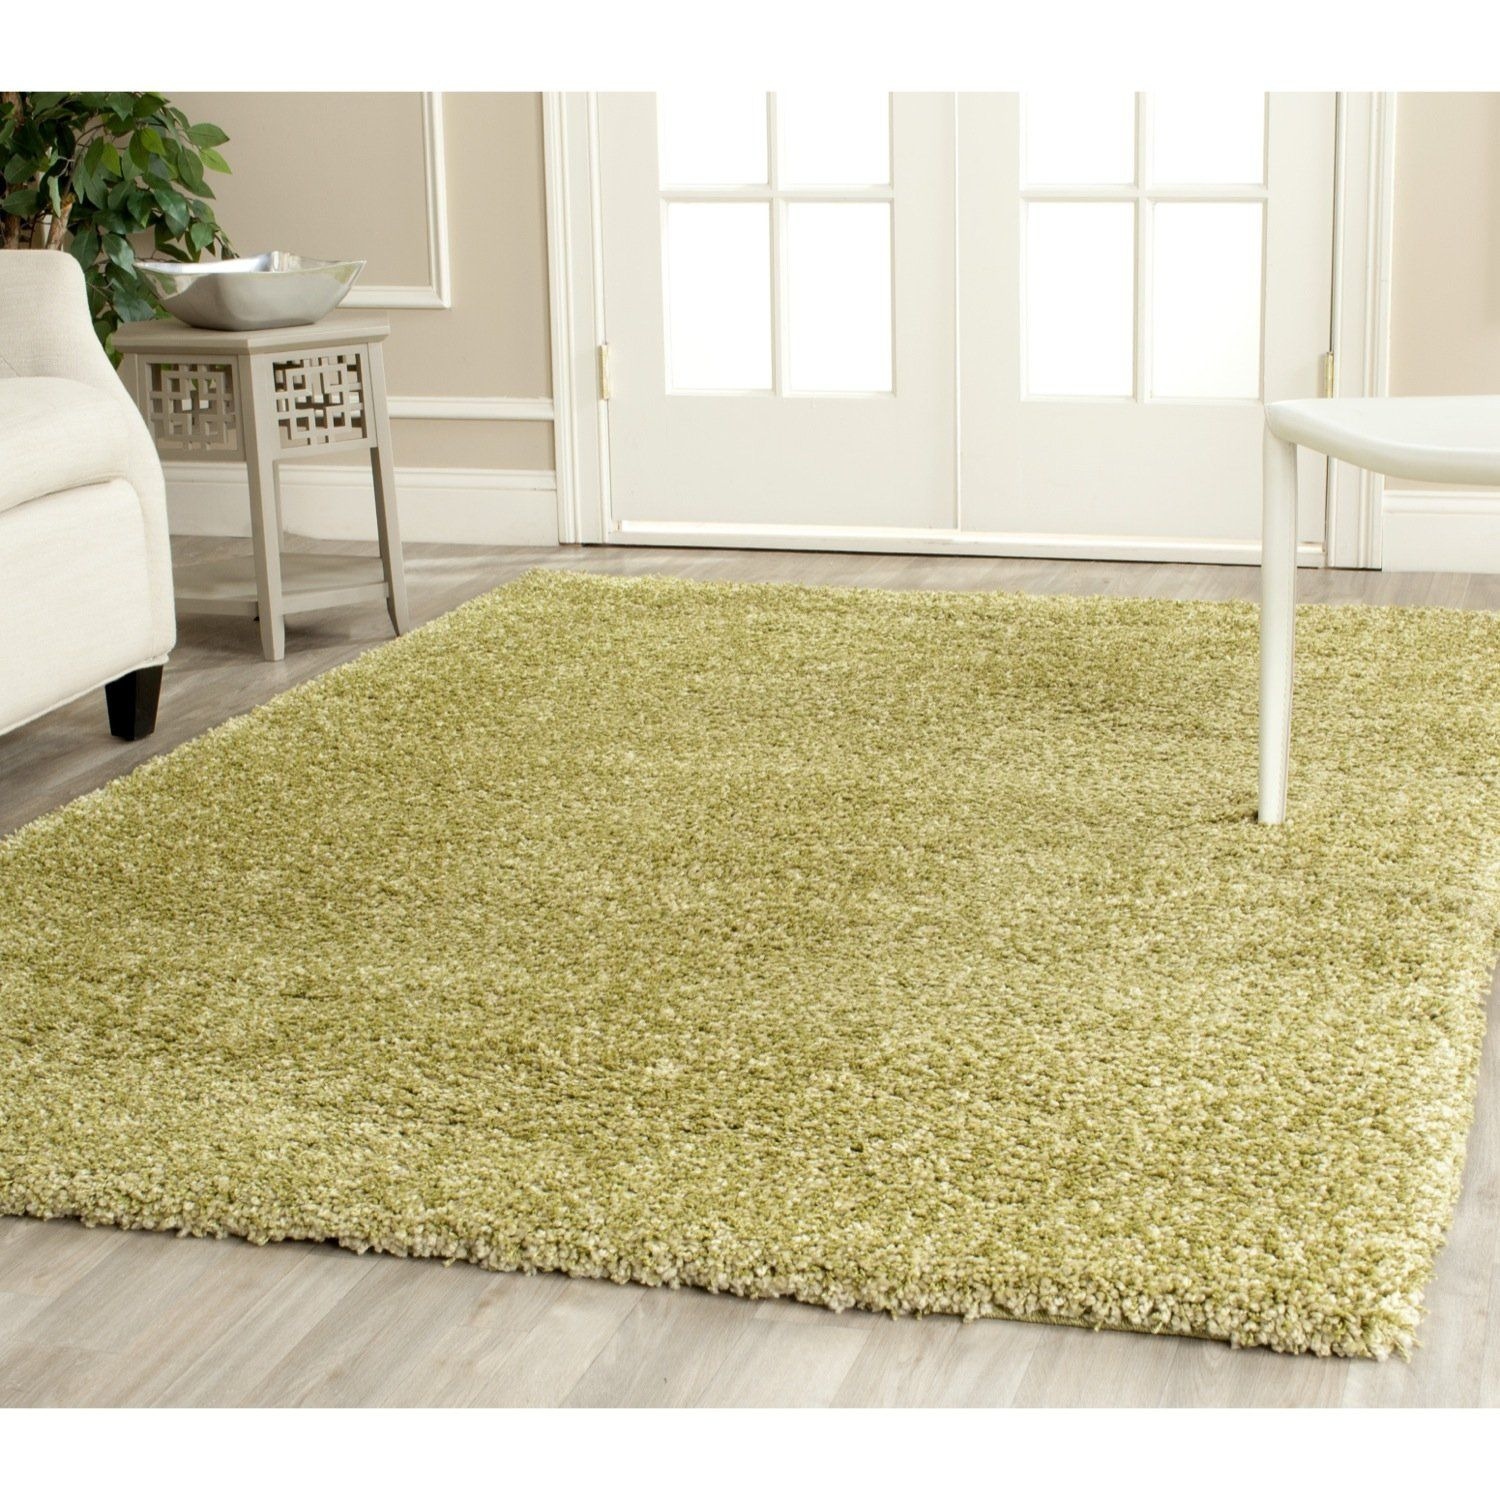 Safavieh California Shag Collection SG151 5252 Green Shag Area Rug, 4 Feet  By 6